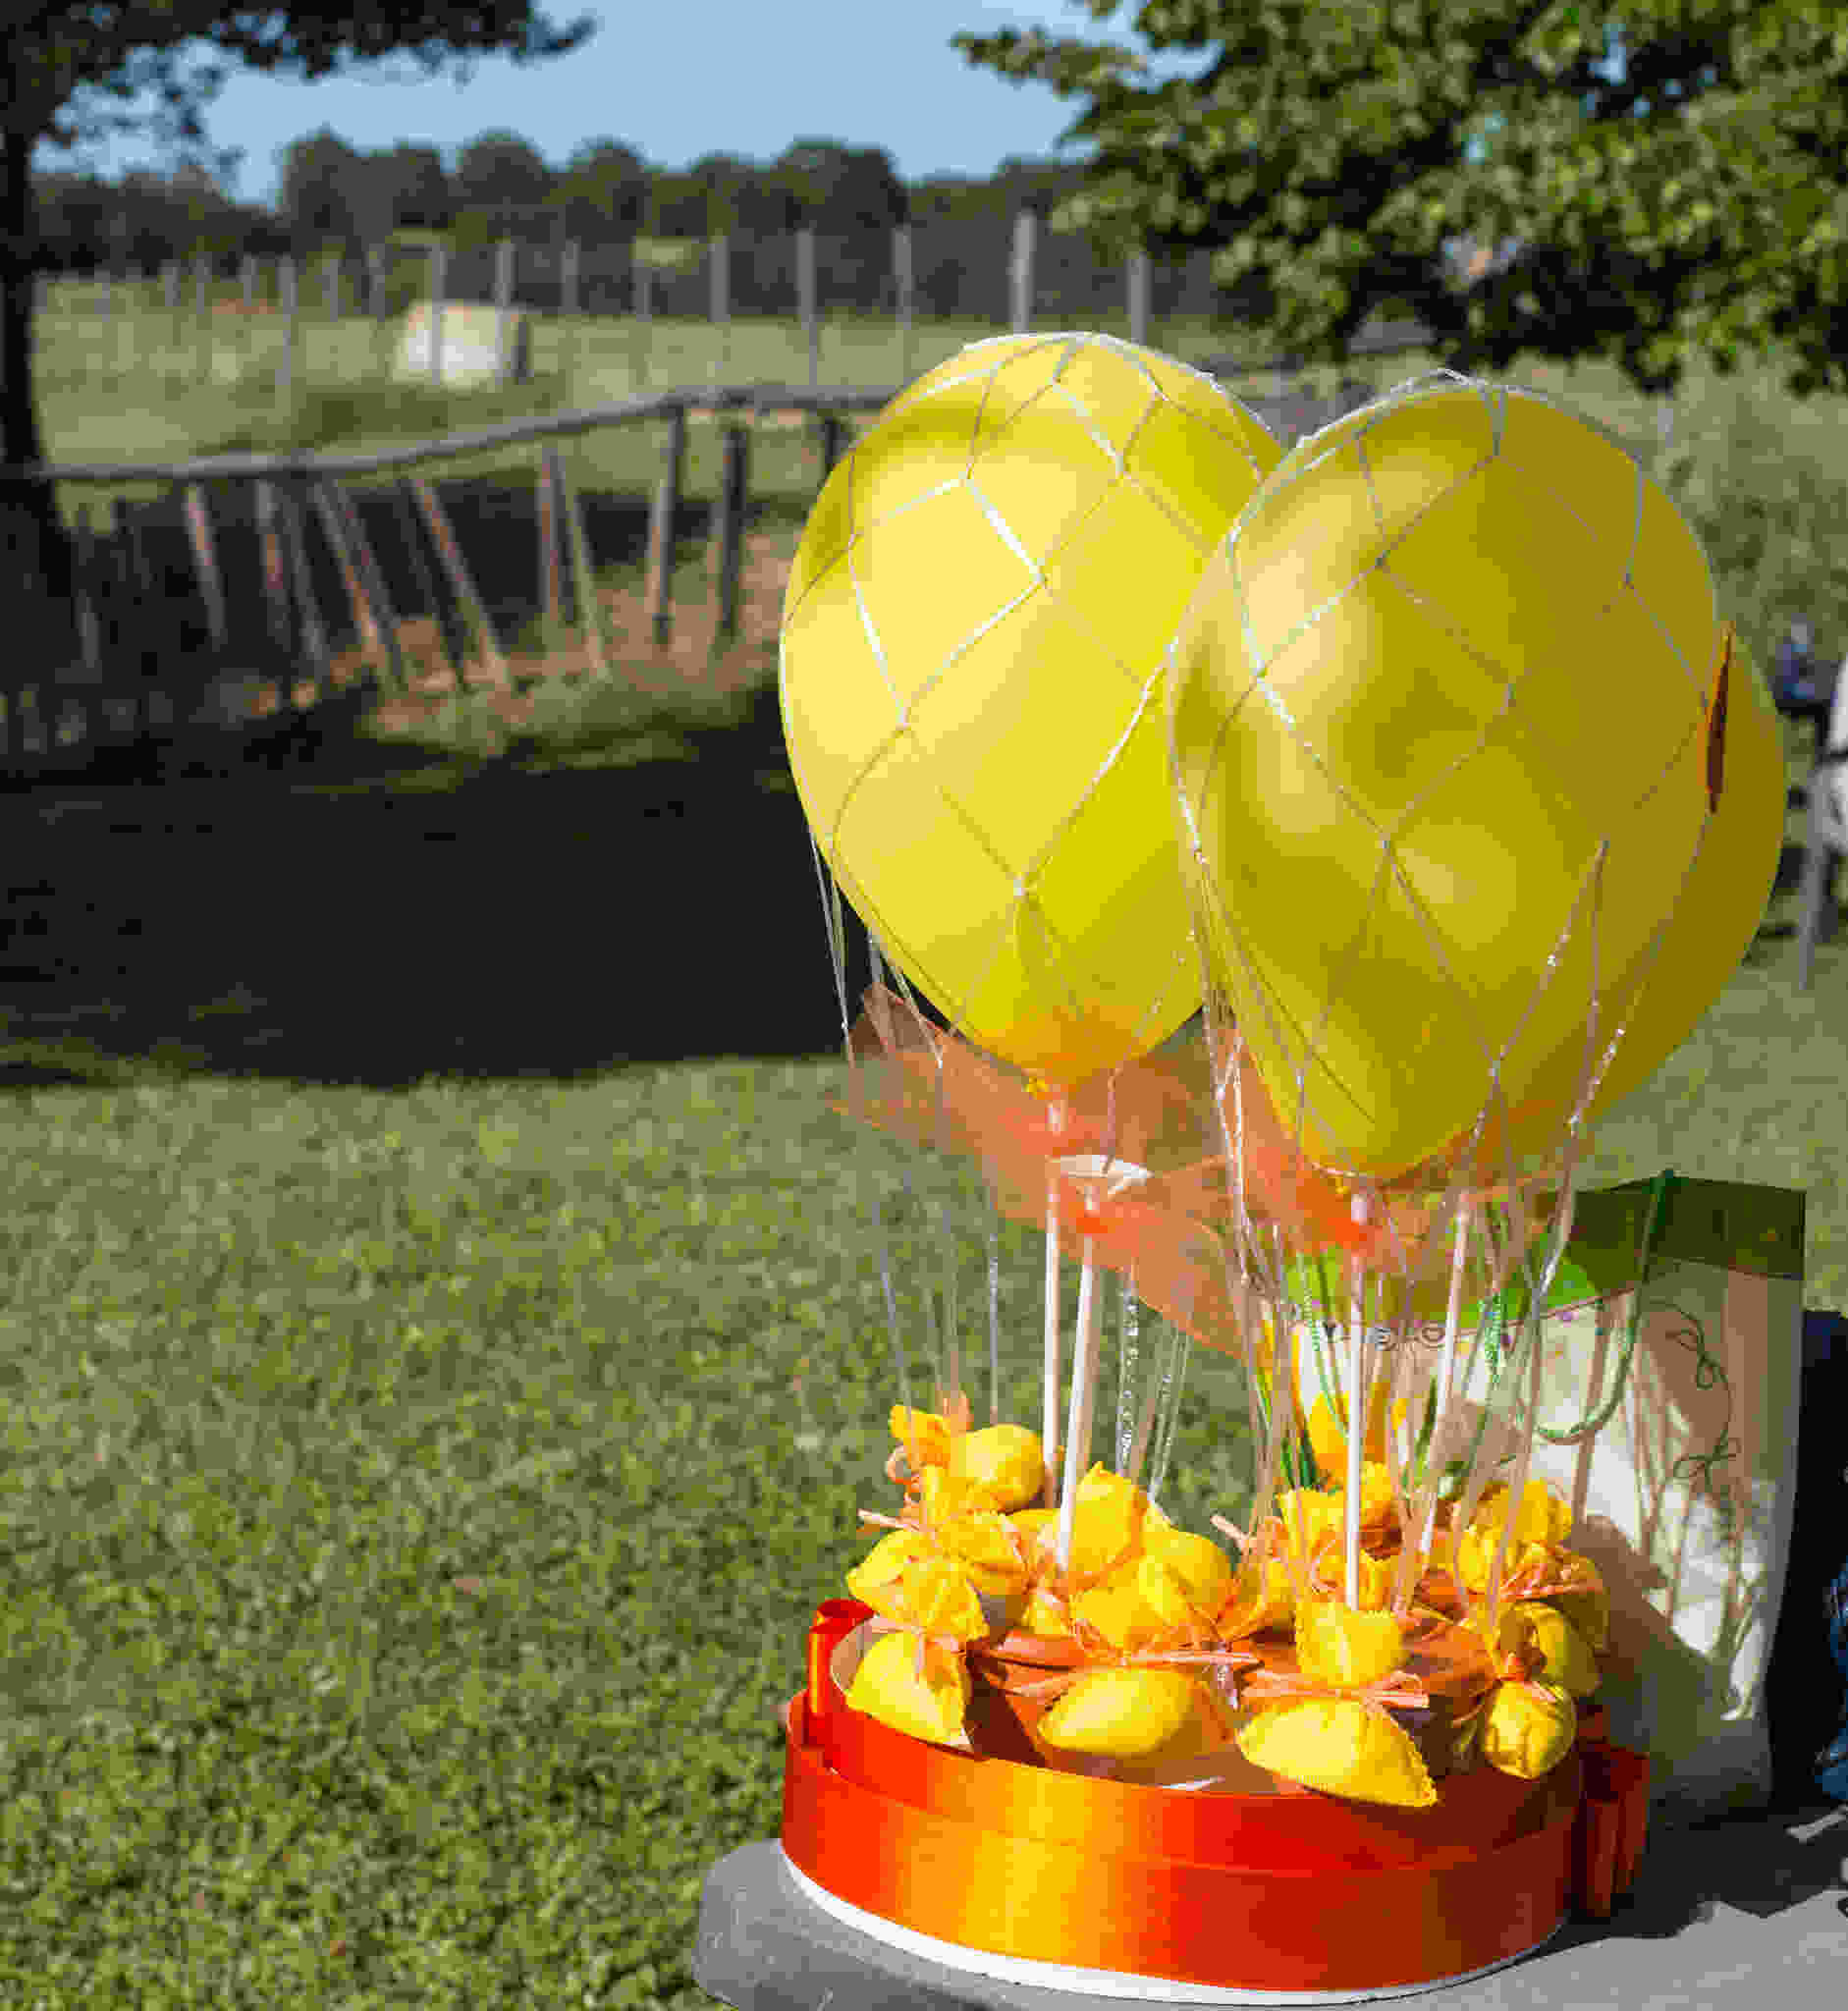 This image shows party decorations and yellow balloons in  an outdoor park location